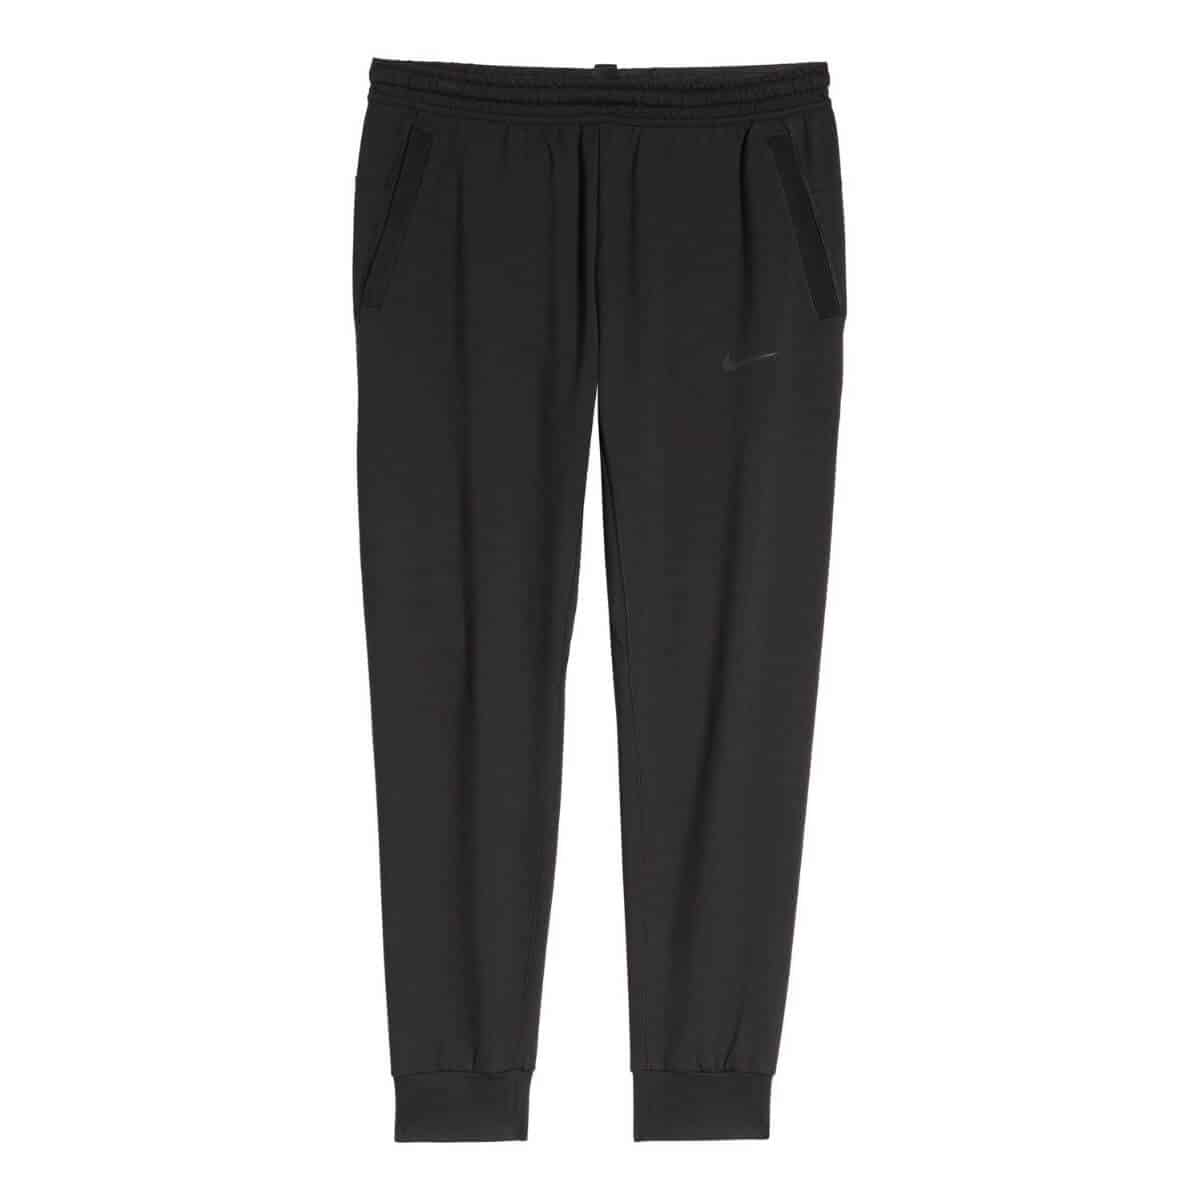 Black activewear pants.